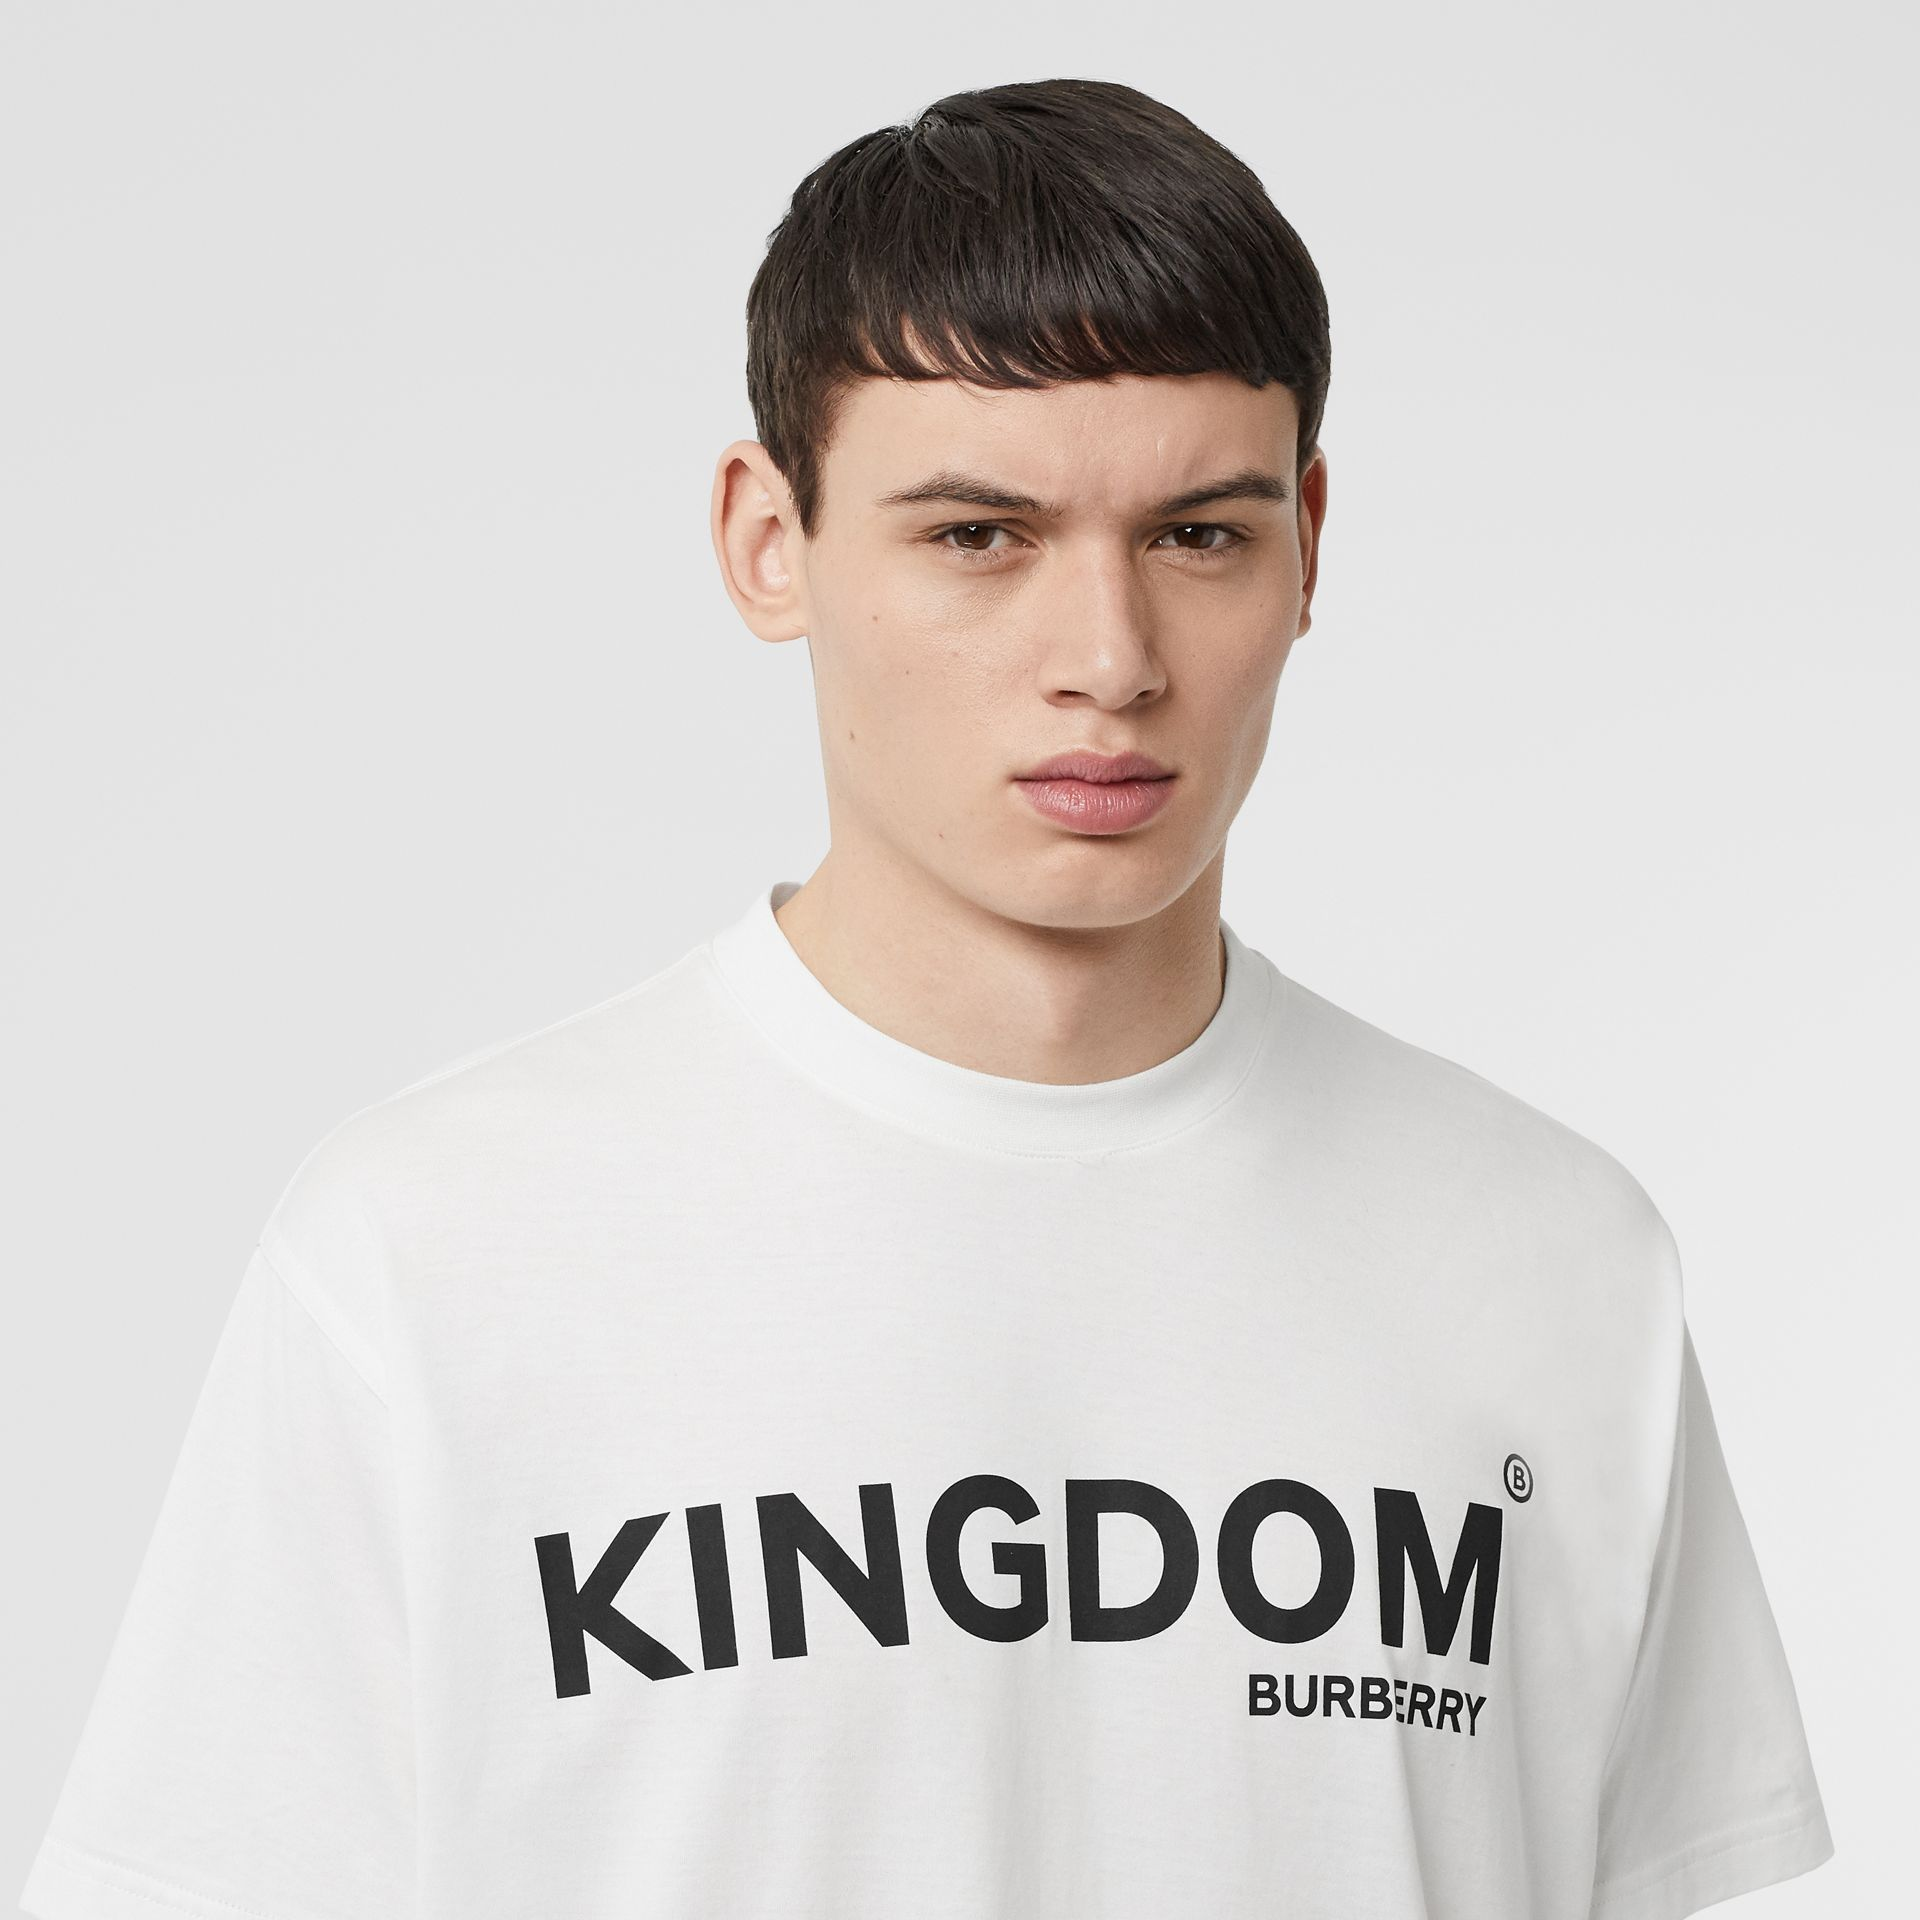 Kingdom Print Cotton T-shirt in White - Men | Burberry United States - gallery image 1